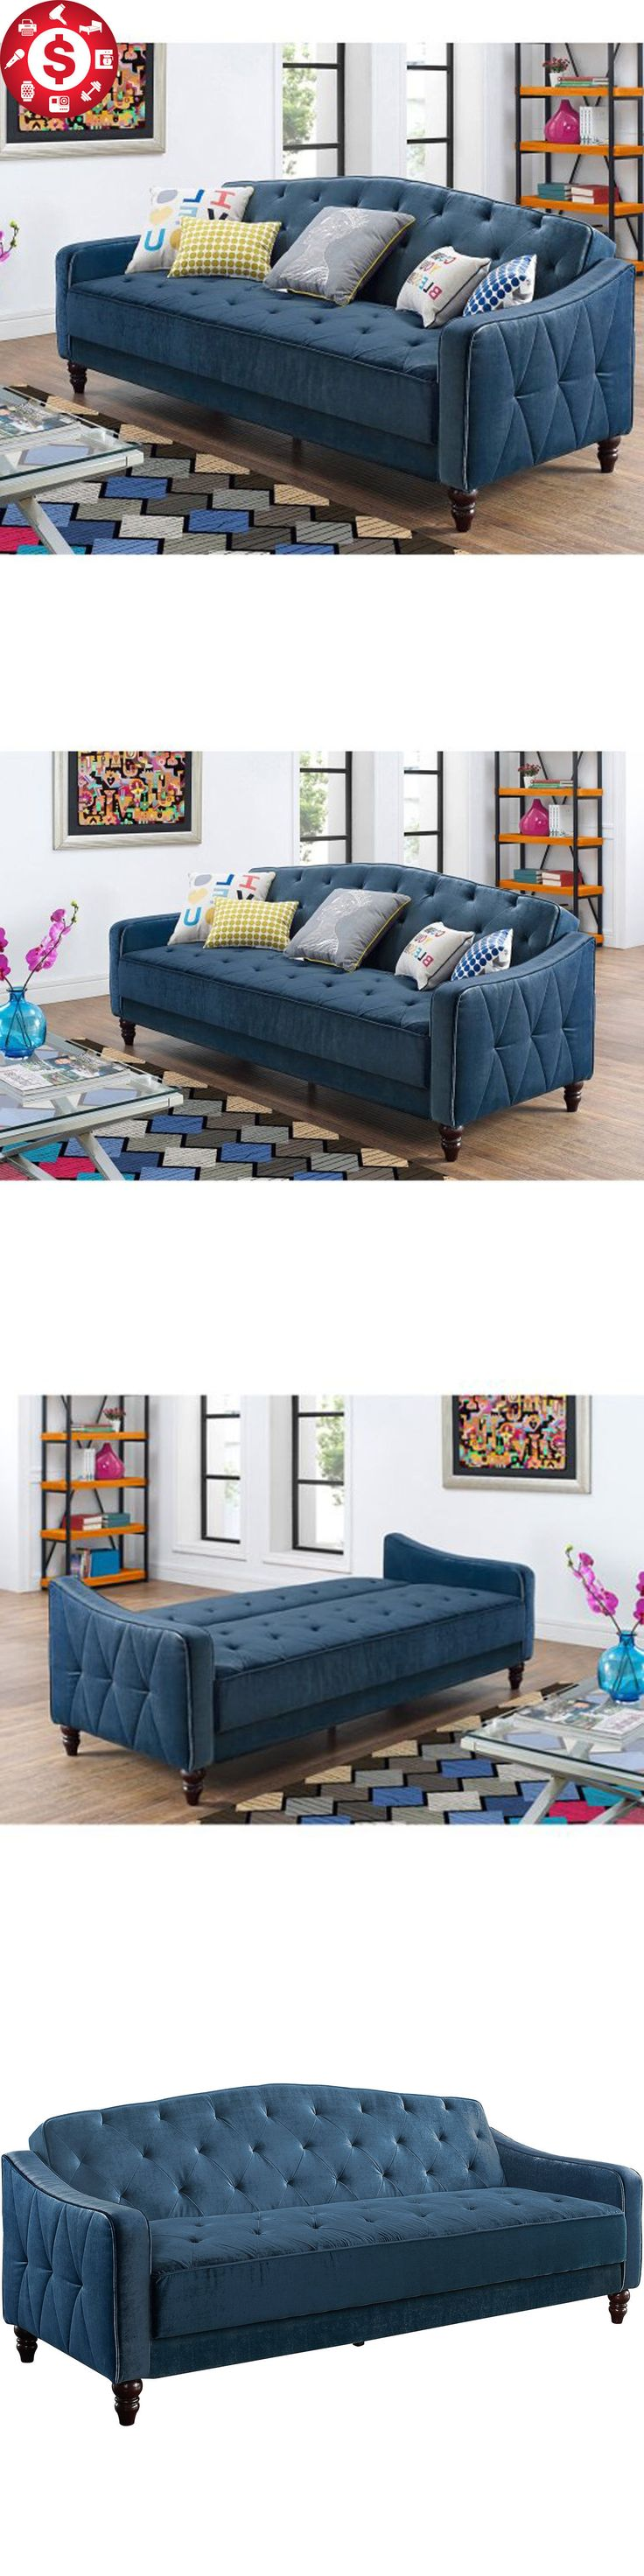 best 20 navy blue couches ideas on pinterest blue Grey Sofa Bed Sofa Bed in Bedroom